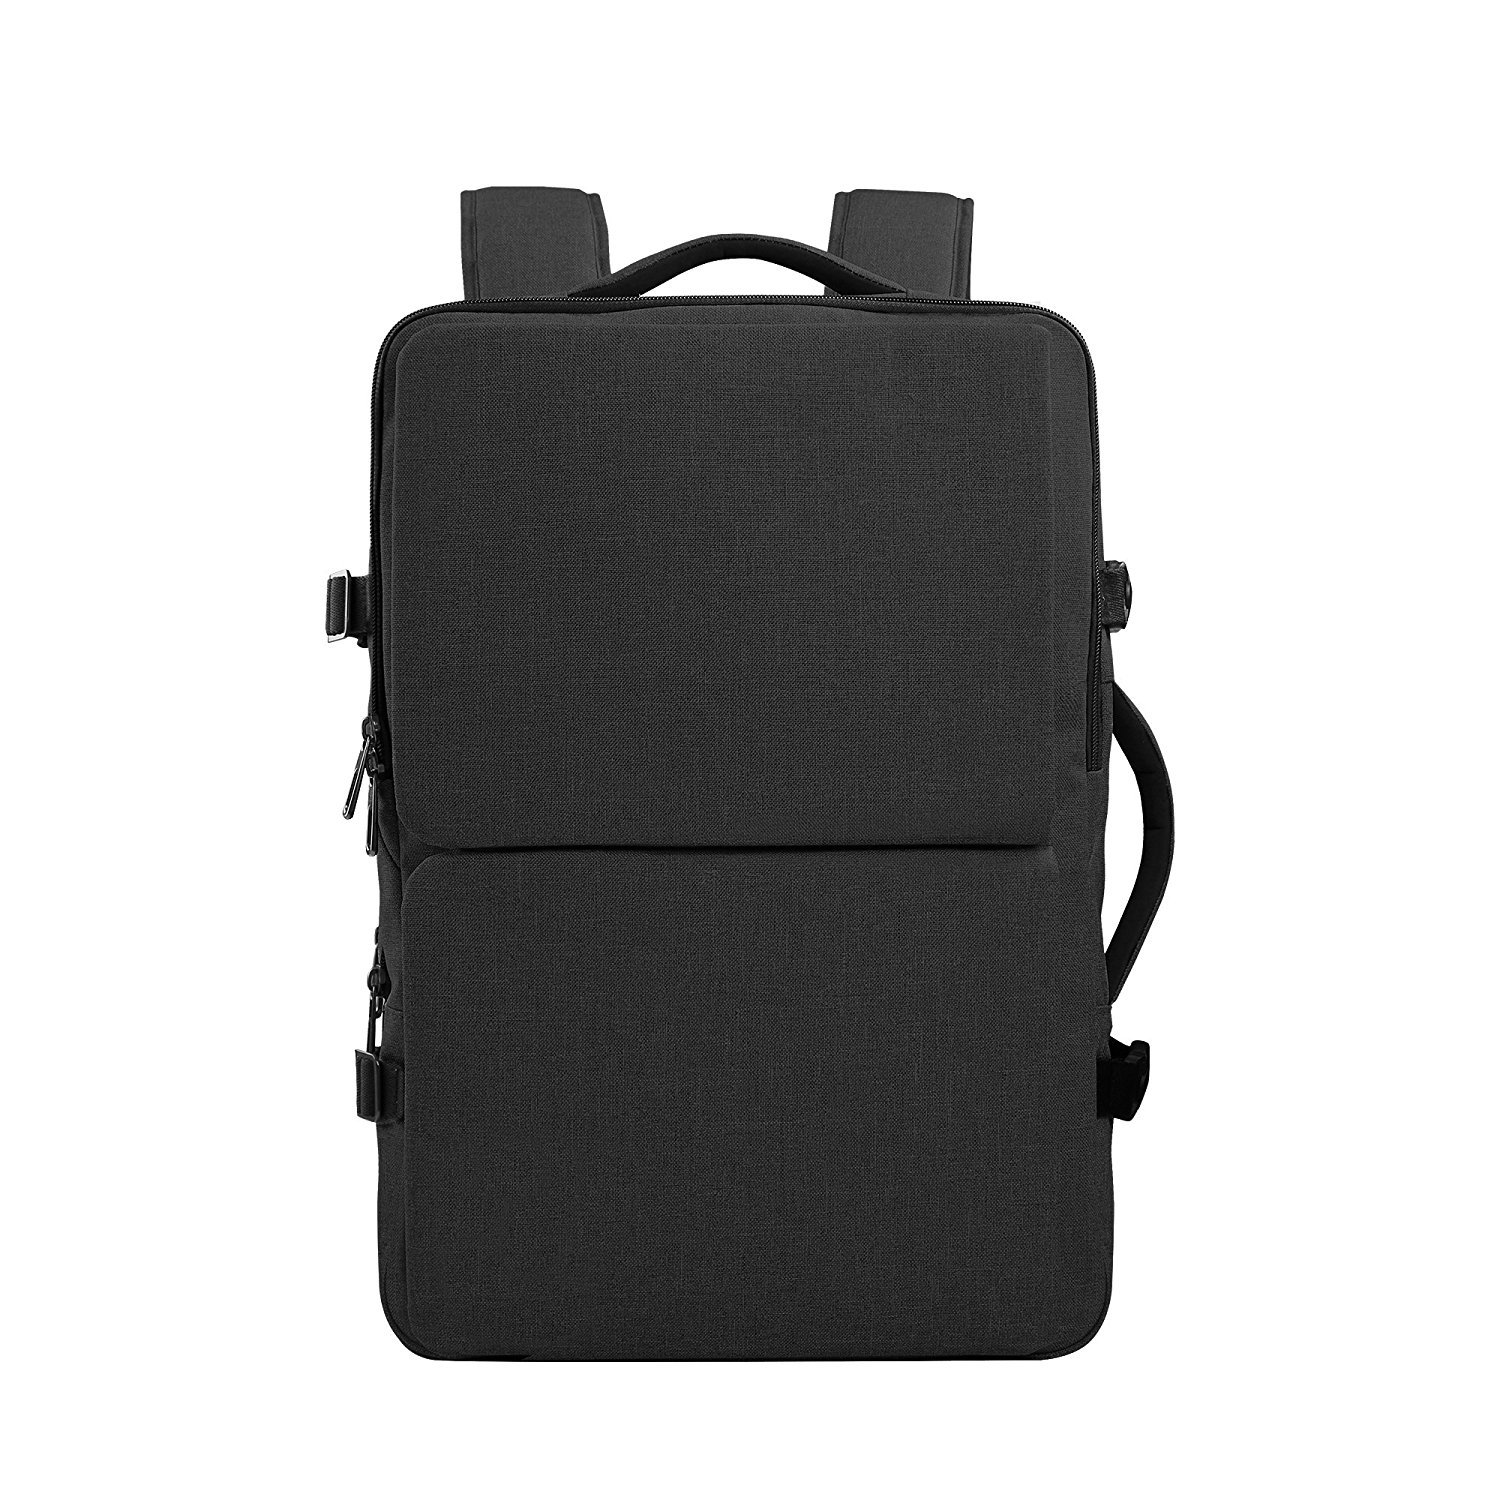 Cai Unisex College Bag, Large Travel Laptop Backpack 15 Inch 17 Inch Computer Water Resistant Rucksack (17, Black)